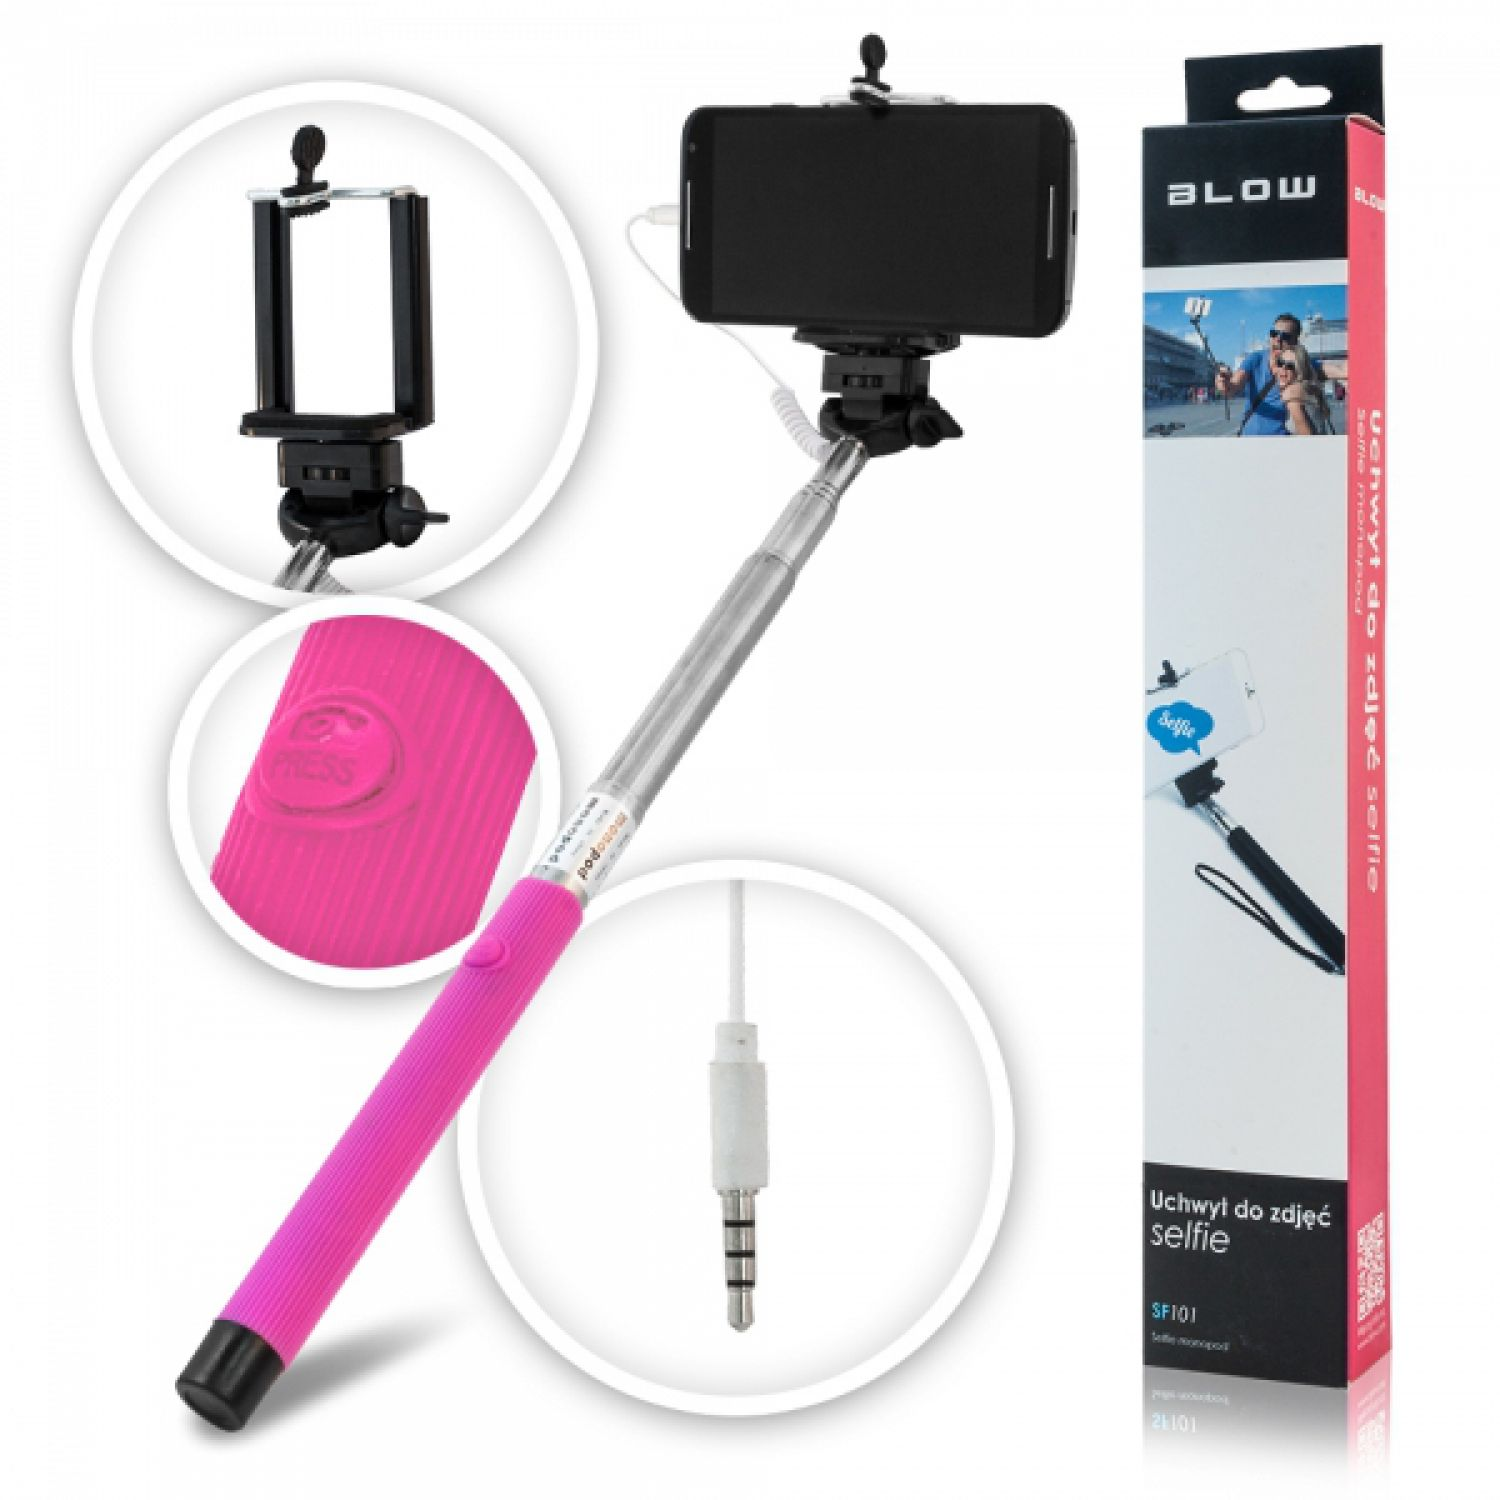 selfie stick stange blow pink selfy foto bild ios android smartphone fixierung ebay. Black Bedroom Furniture Sets. Home Design Ideas